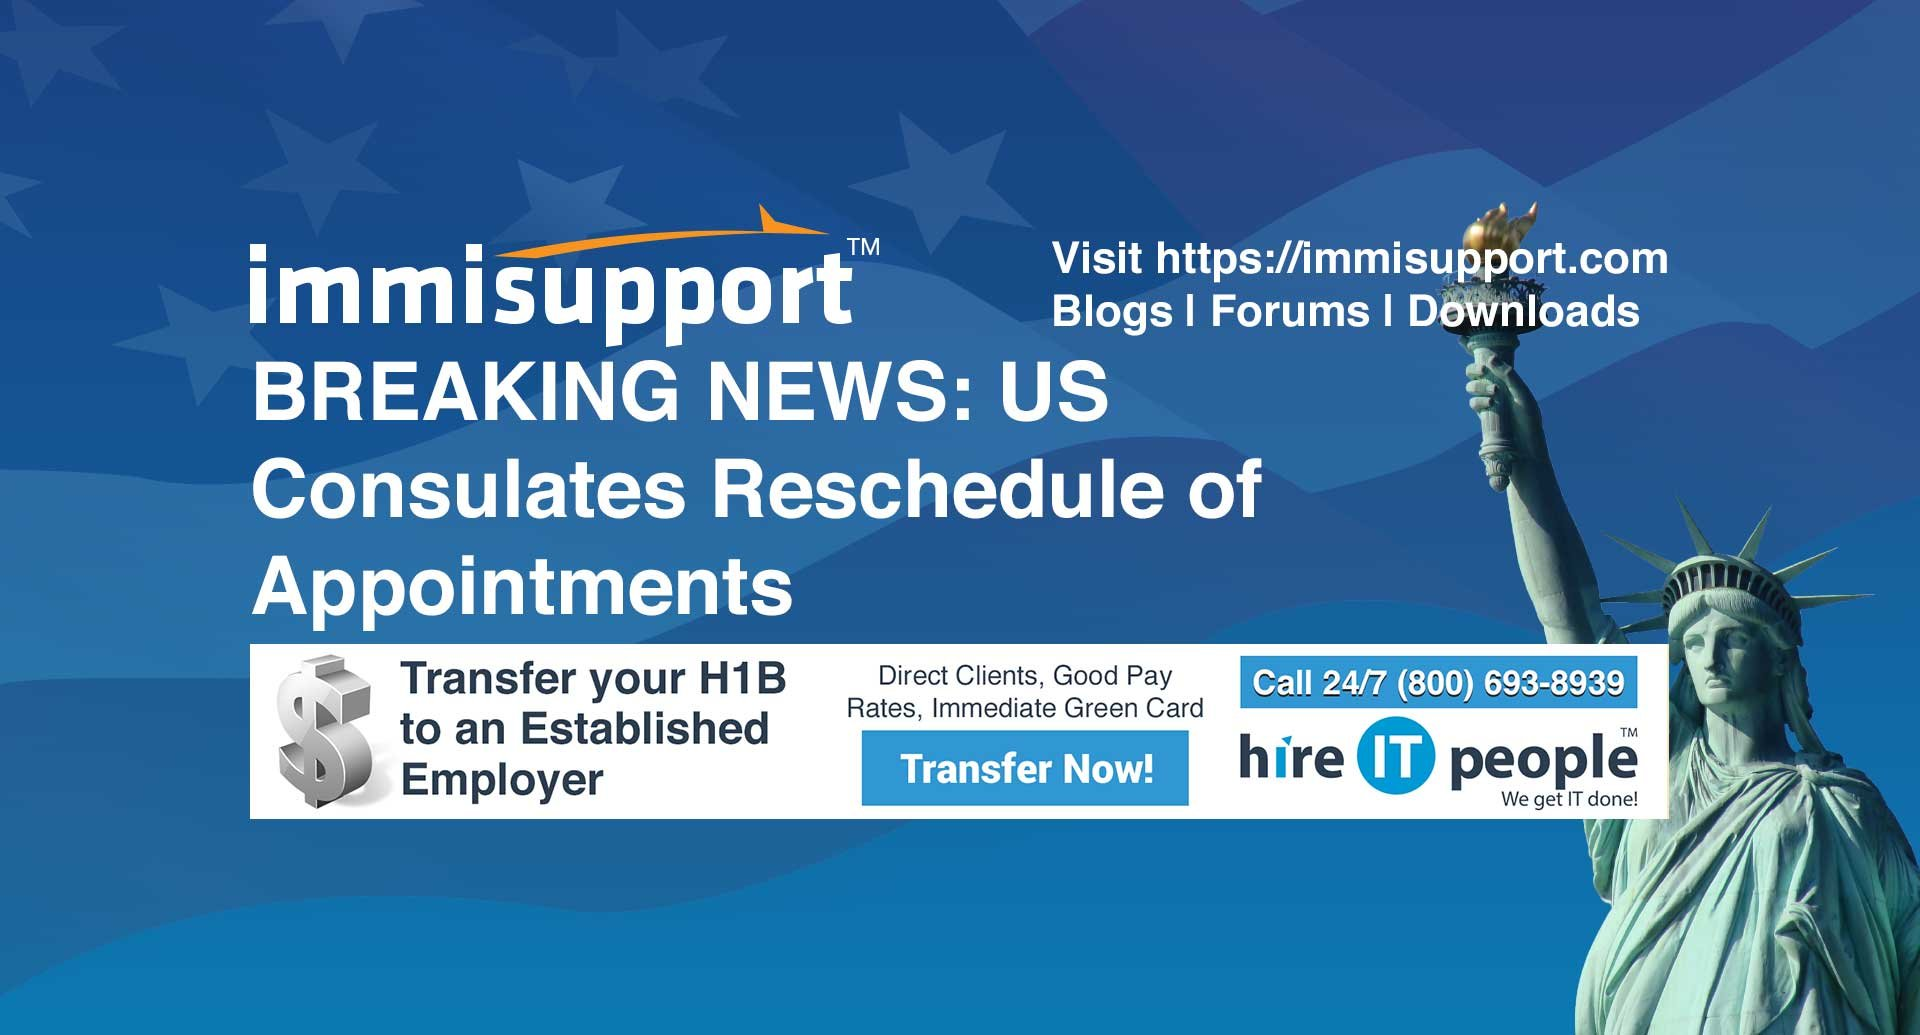 BREAKING NEWS: US Consulates Reschedule of Appointments